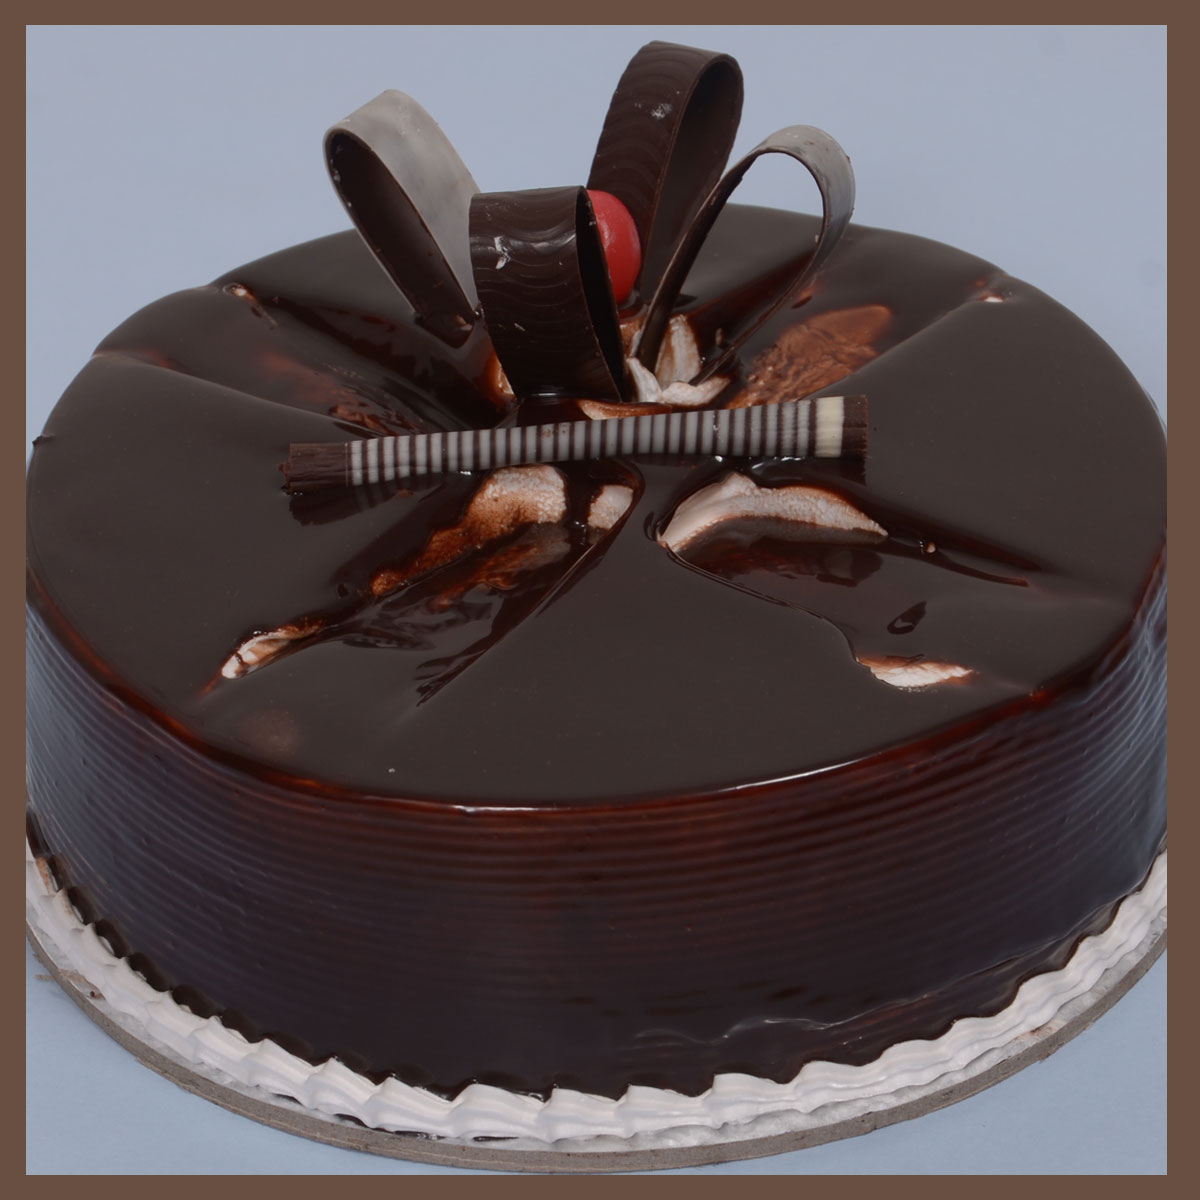 CHOCO MARBLE, online cake order in gurgaon